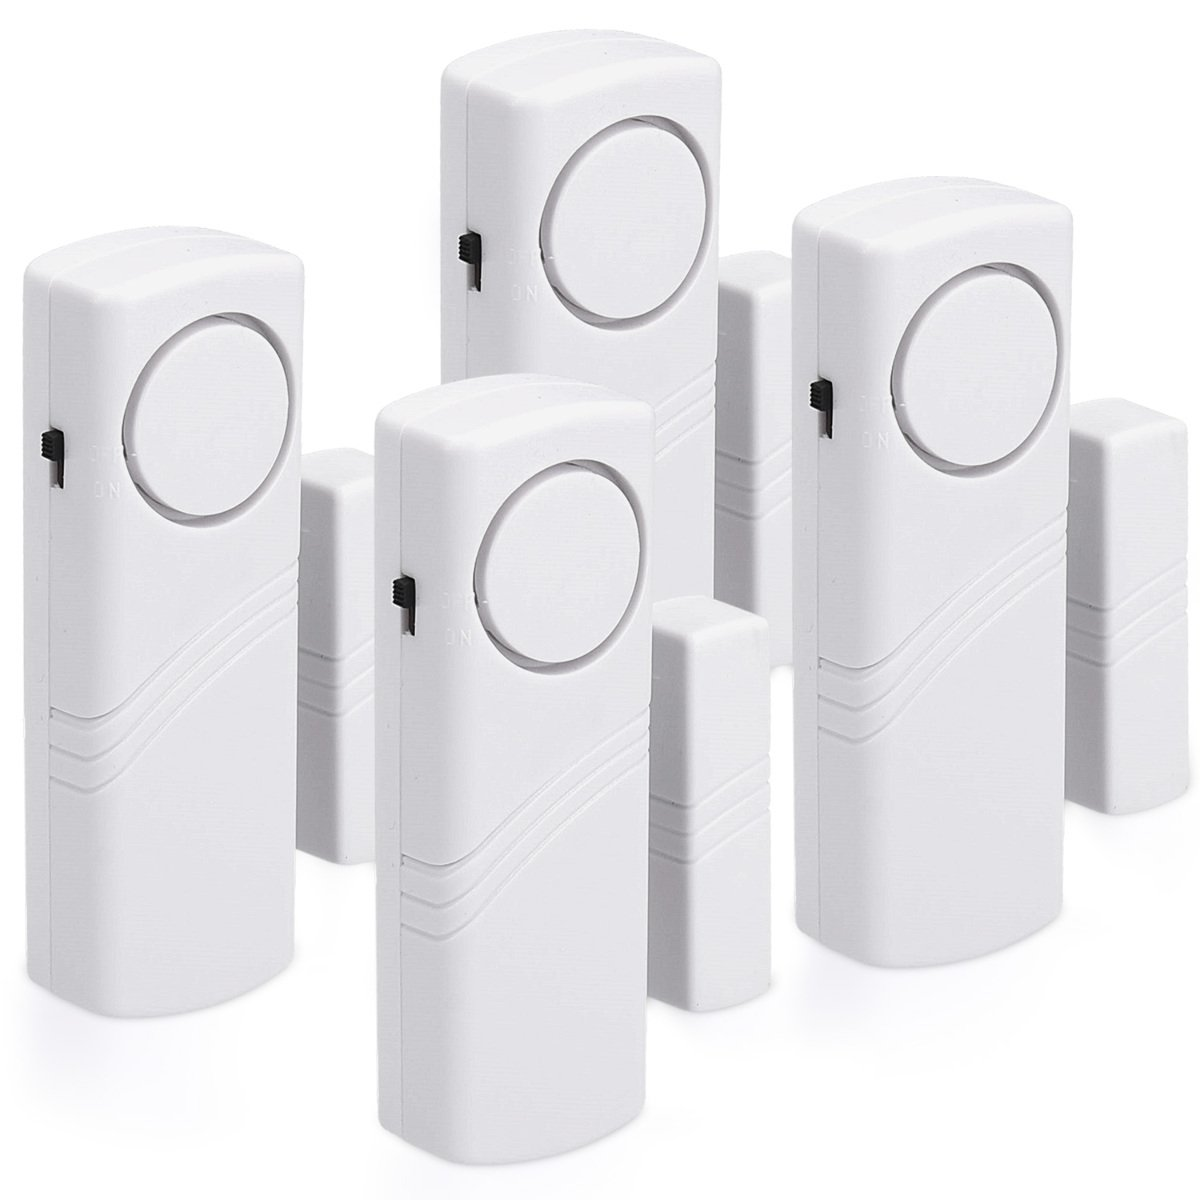 kwmobile door and window alarmset - 4 set of acoustic burglar alarms including batteries - wireless alarm system - 100dB volume - Home Security